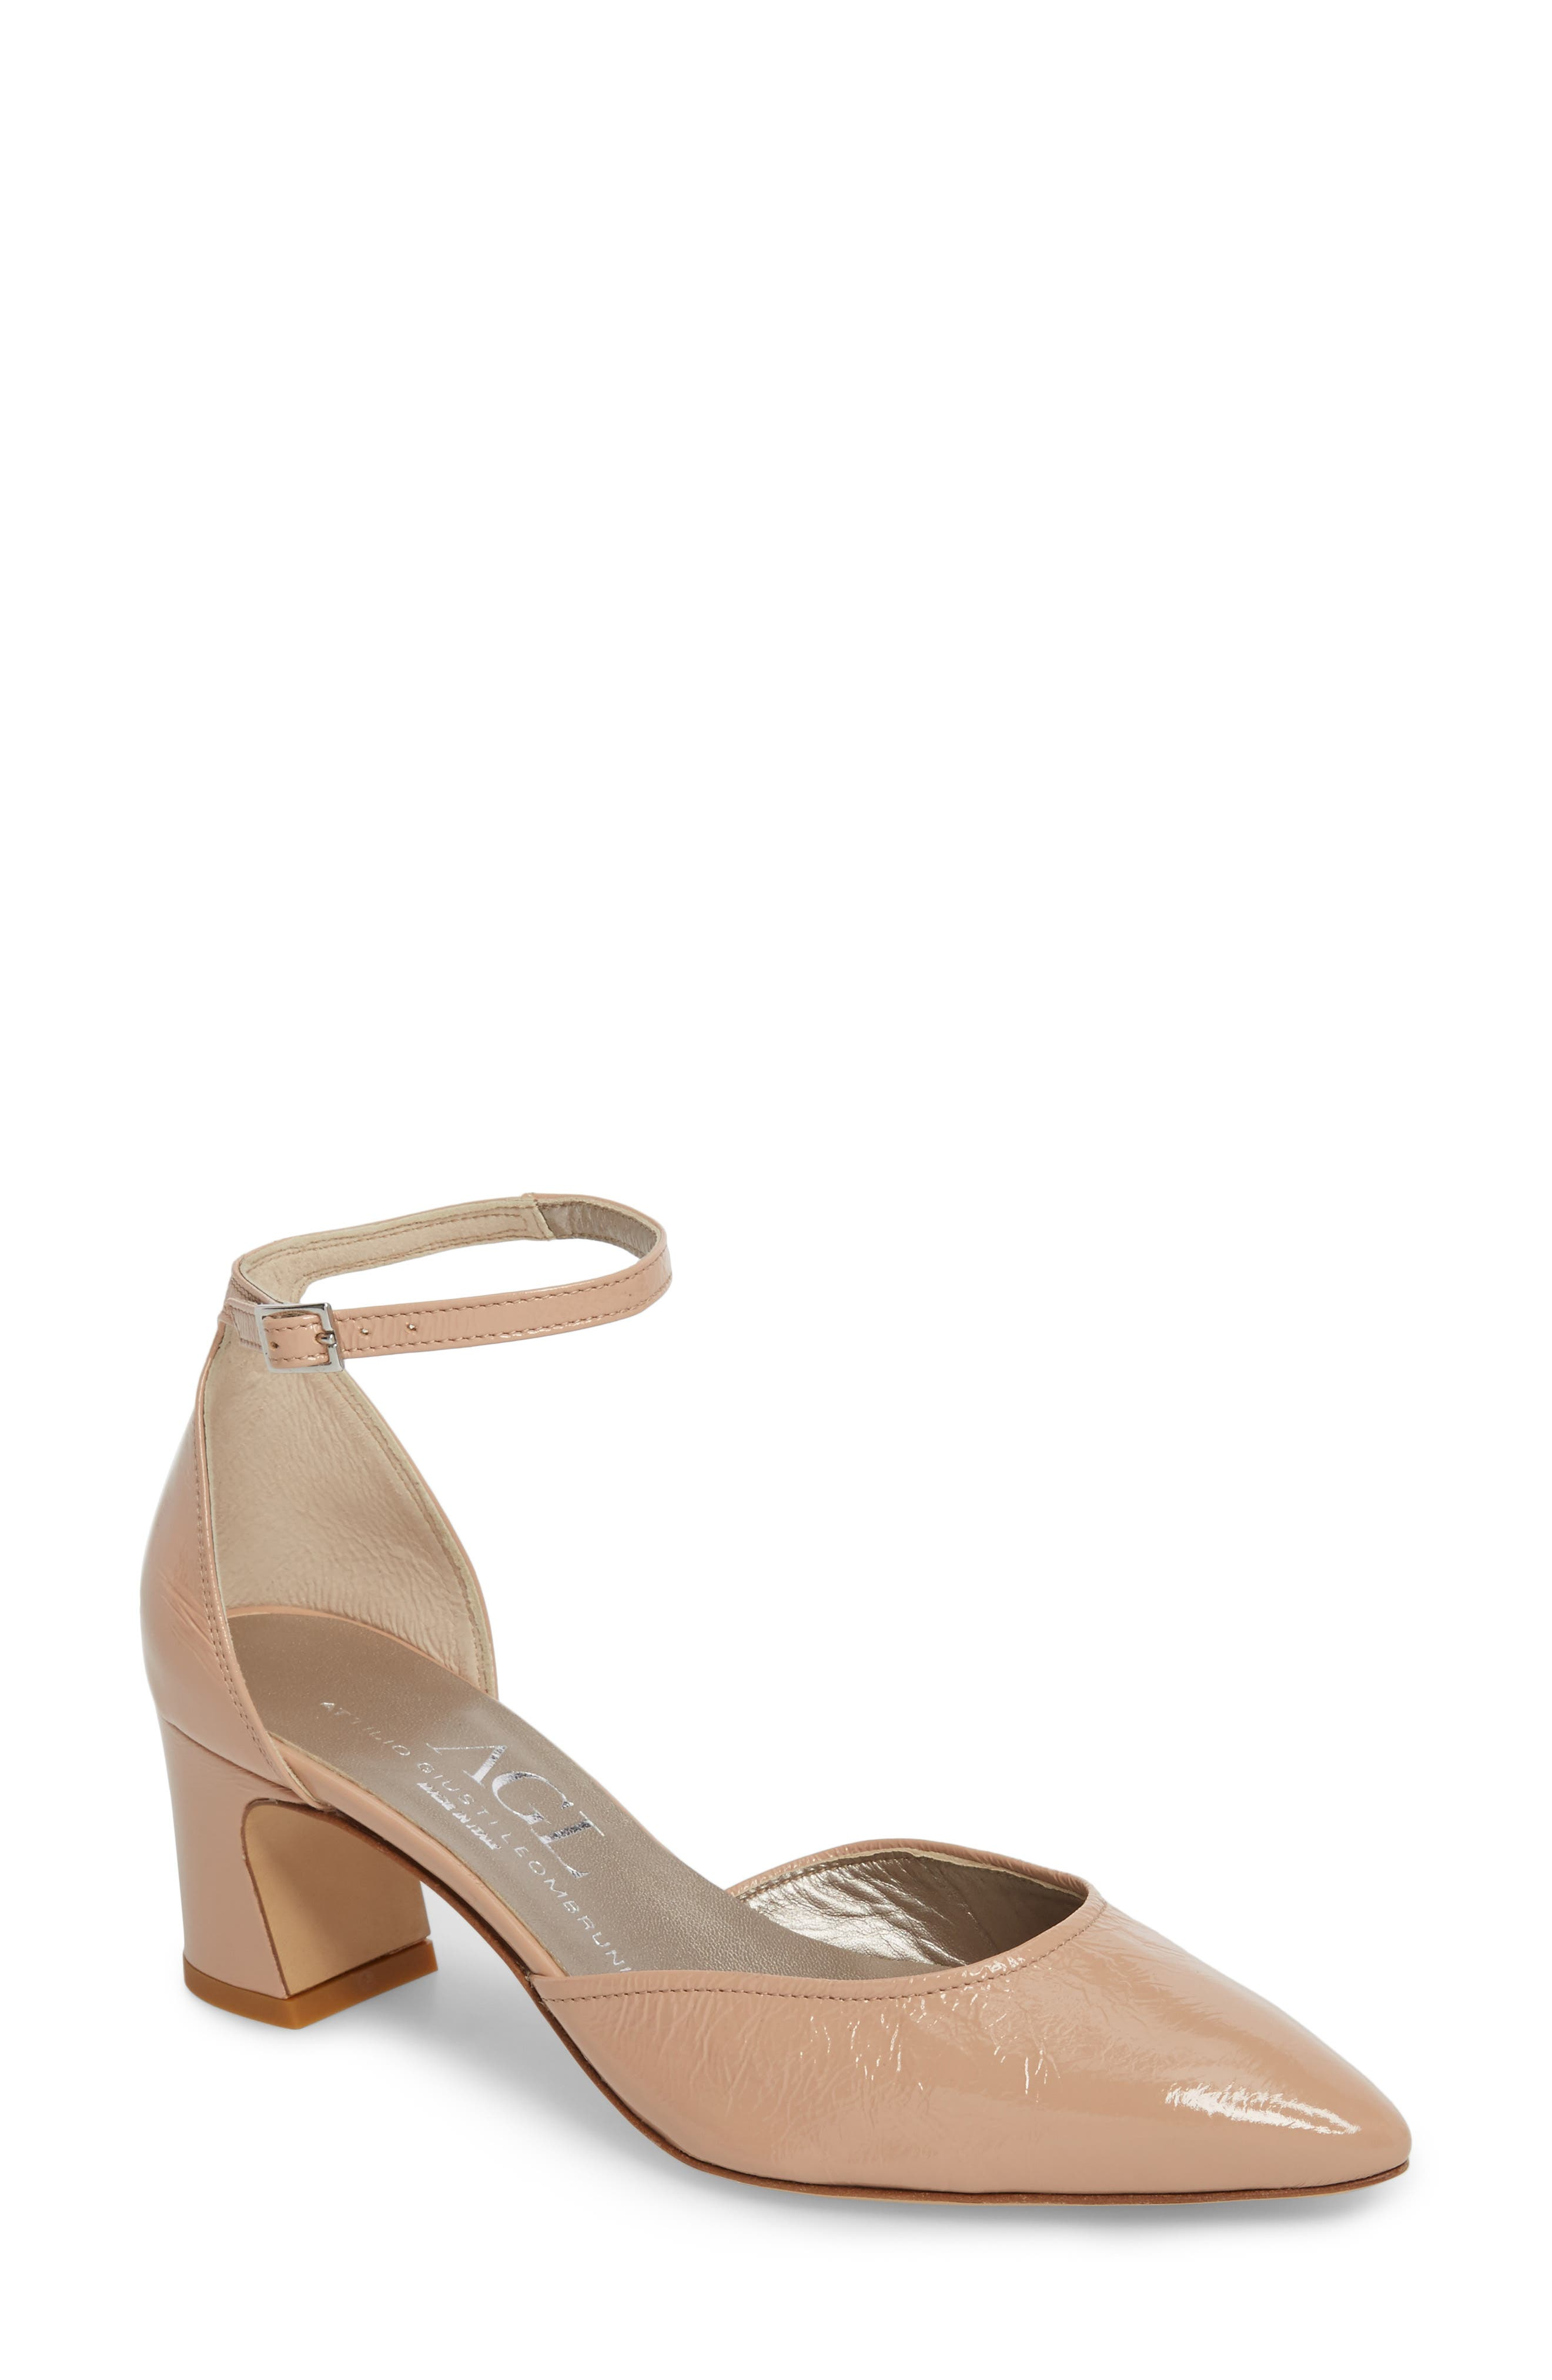 d'Orsay Ankle Strap Pump,                         Main,                         color, Nude Glammy Leather